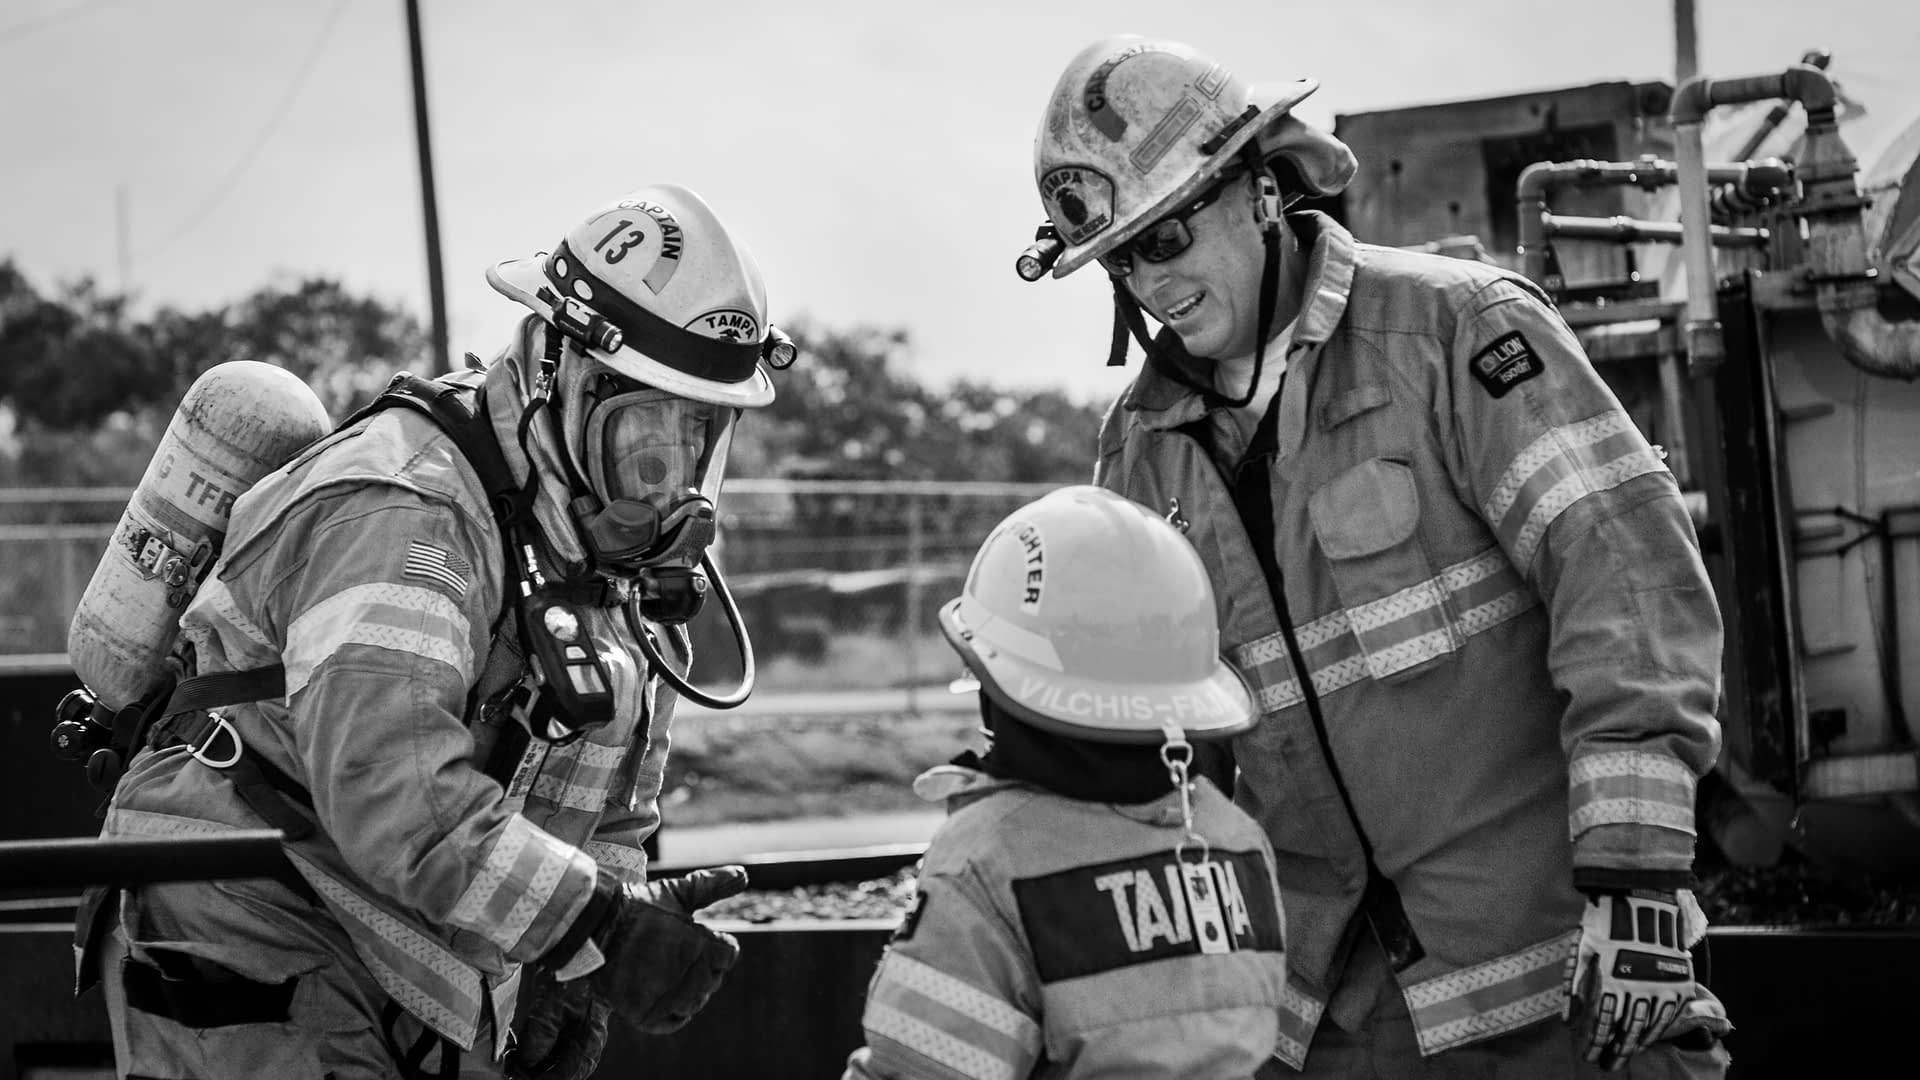 Make-A-Wish Boy Talks With Firefighters